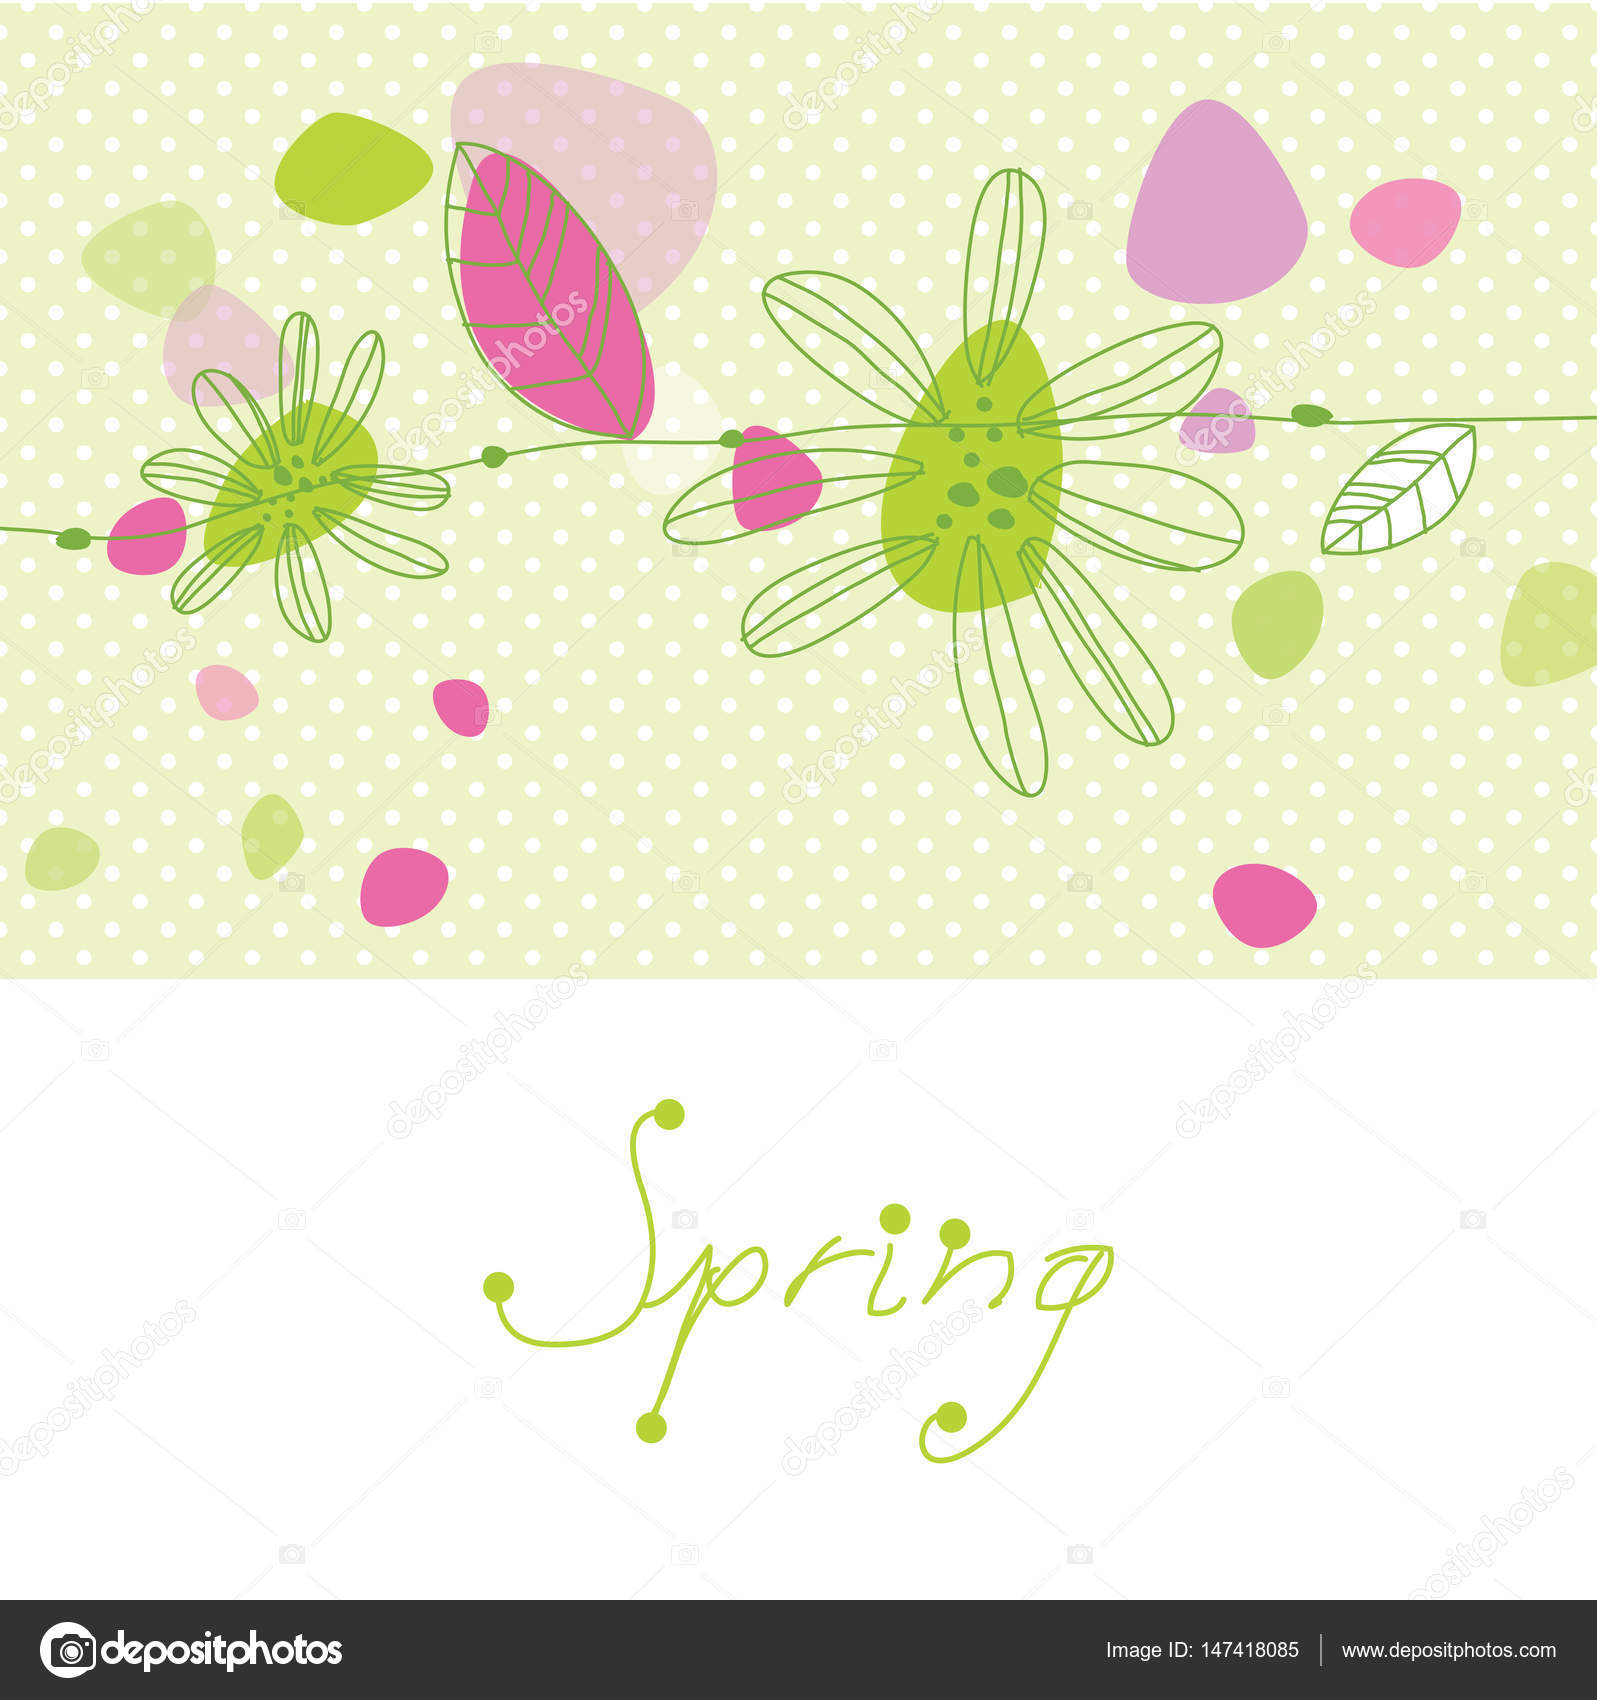 spring time spring flowers greeting card template with copy space